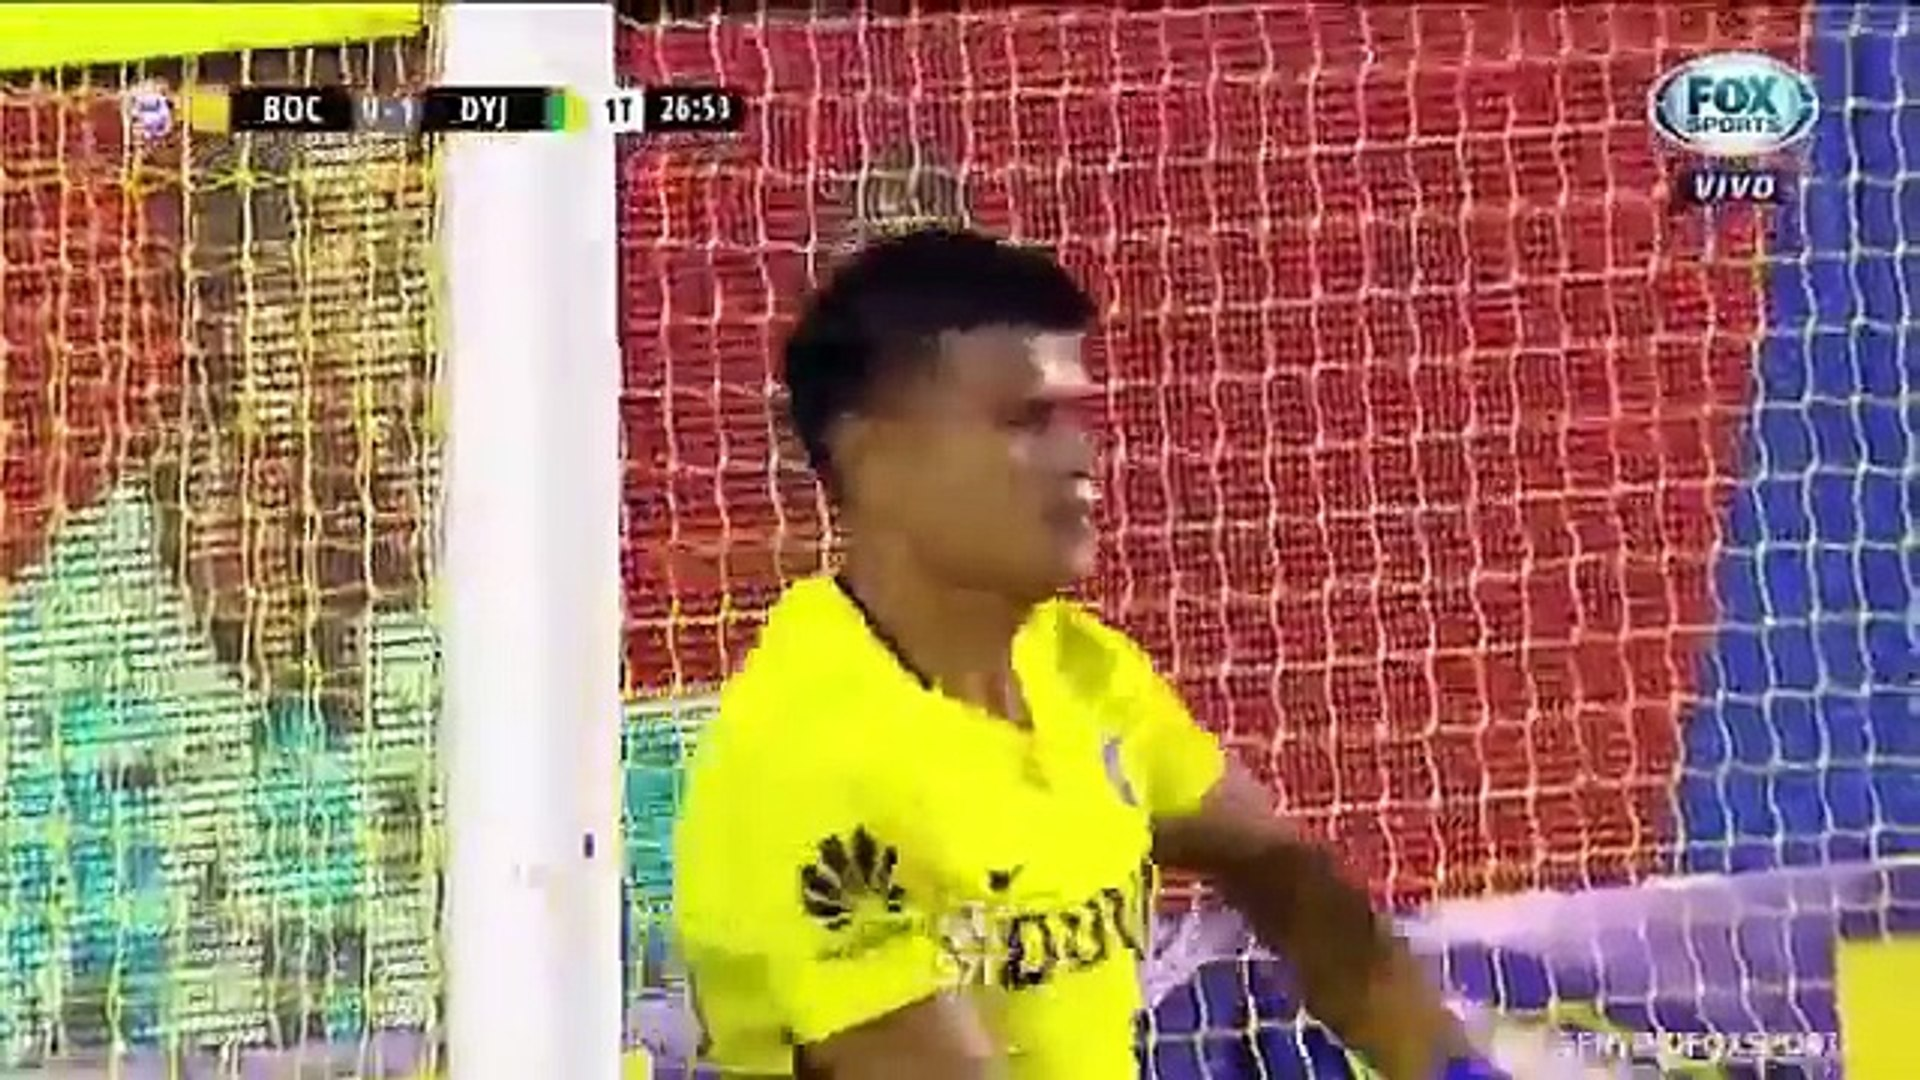 Boca Juniors vs Defensa y Justicia 1-2 Resumen Y Goles Completo - Superliga Argentina 07/04/2018